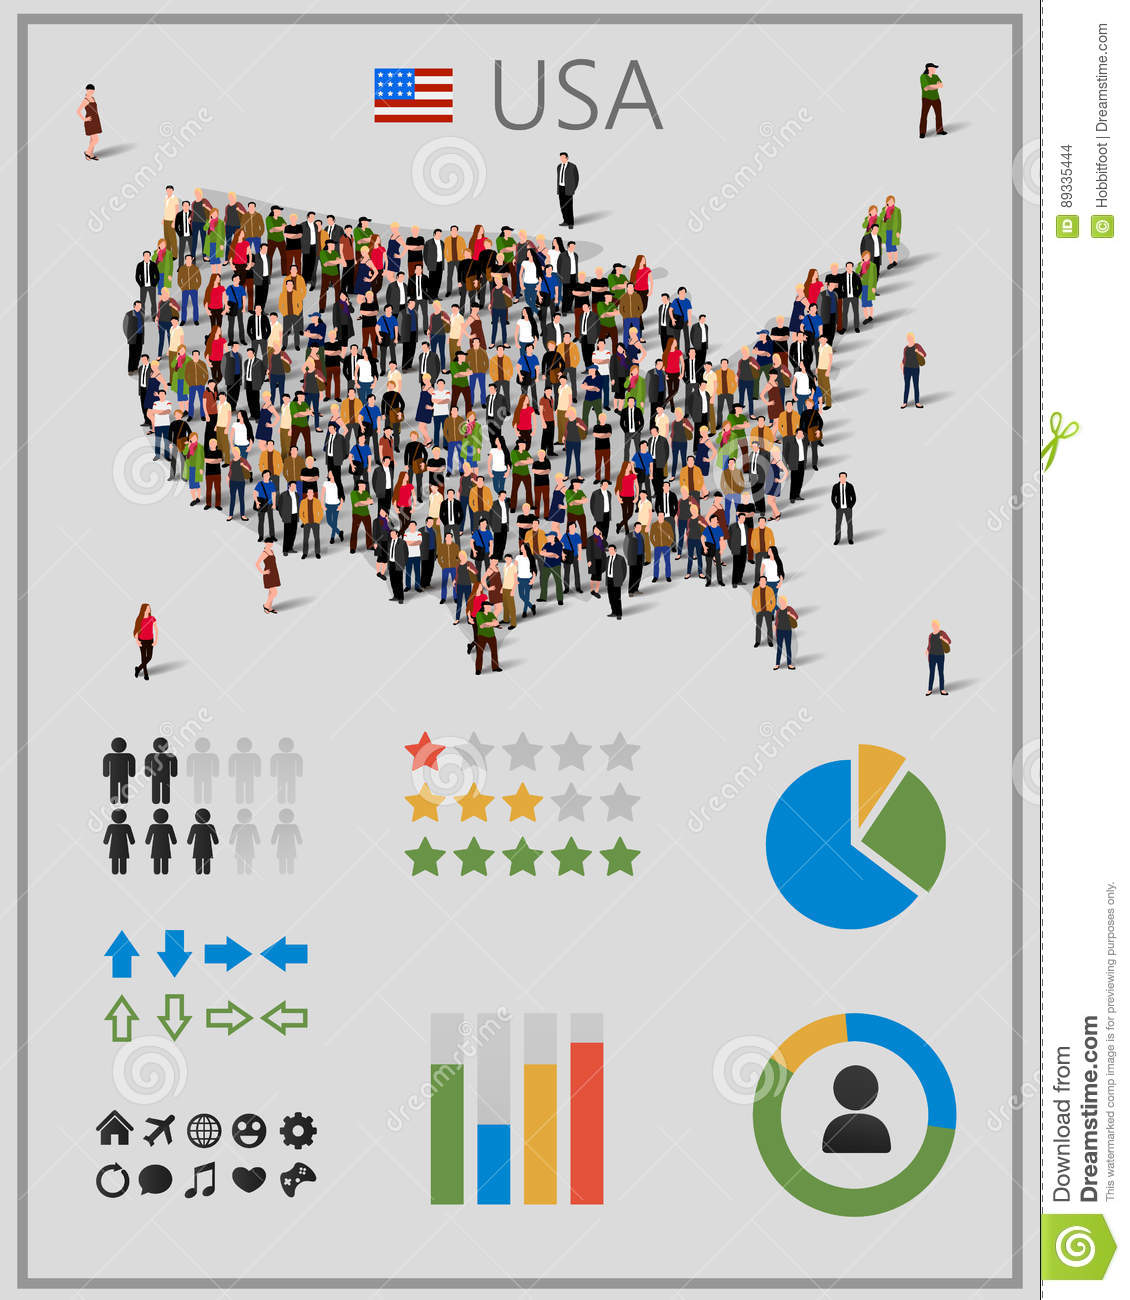 Large Group Of People In United States Of America Or USA Map ... on east coast map, great lakes map, nevada map, the us map, florida map, caribbean map, the world map, mississippi map, blank map, us state map, 13 colonies map, arkansas map, africa map, missouri map, europe map, canada map, mexico map, full size us map, tennessee map, texas map,